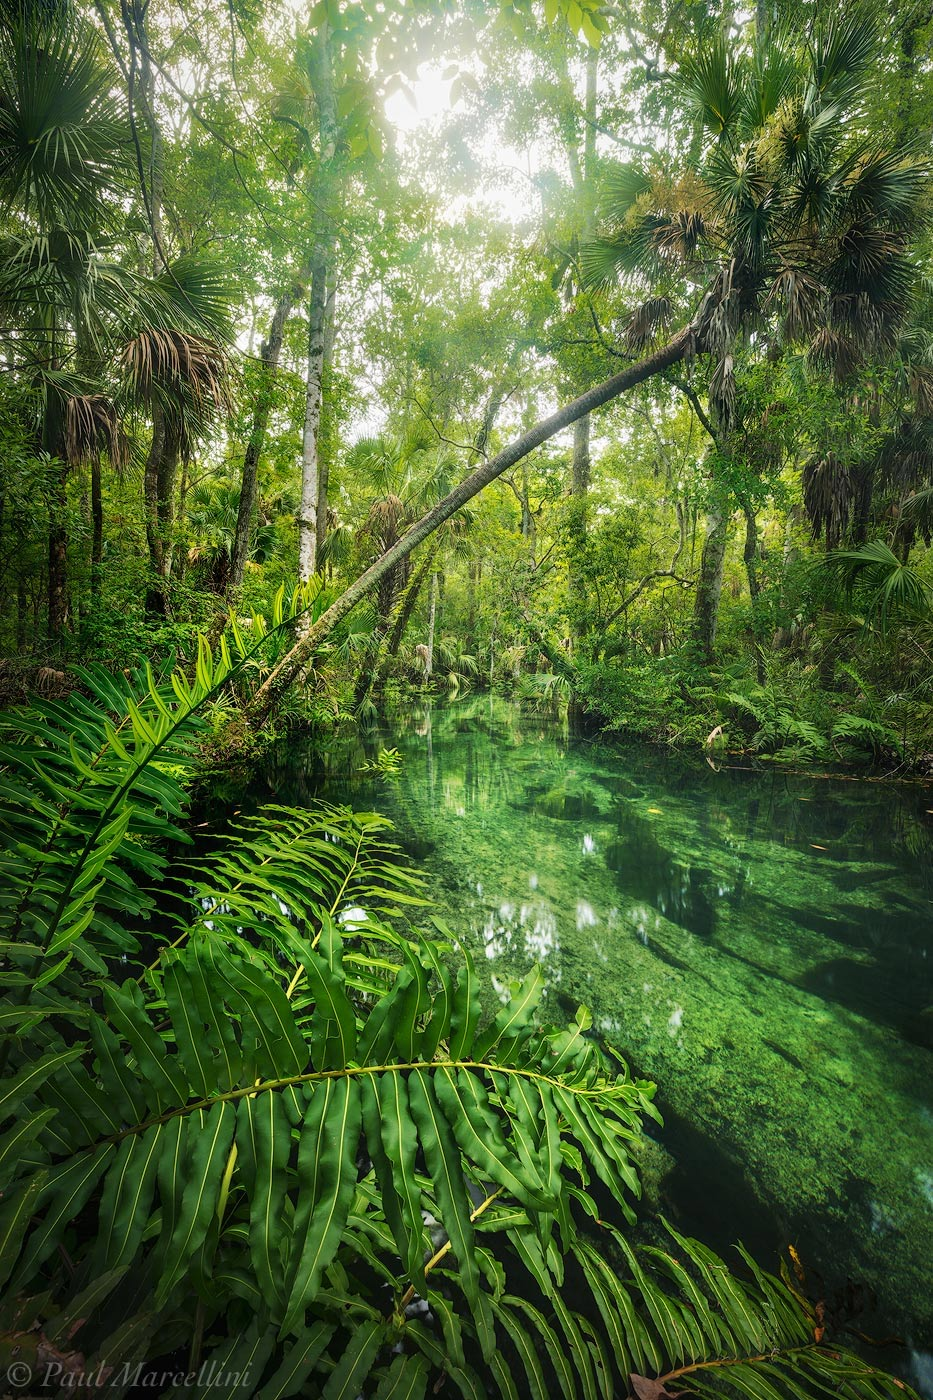 chassahowitzka river, chassahowitzka national wildlife refuge, spring, Chassahowitzka, chaz, photo